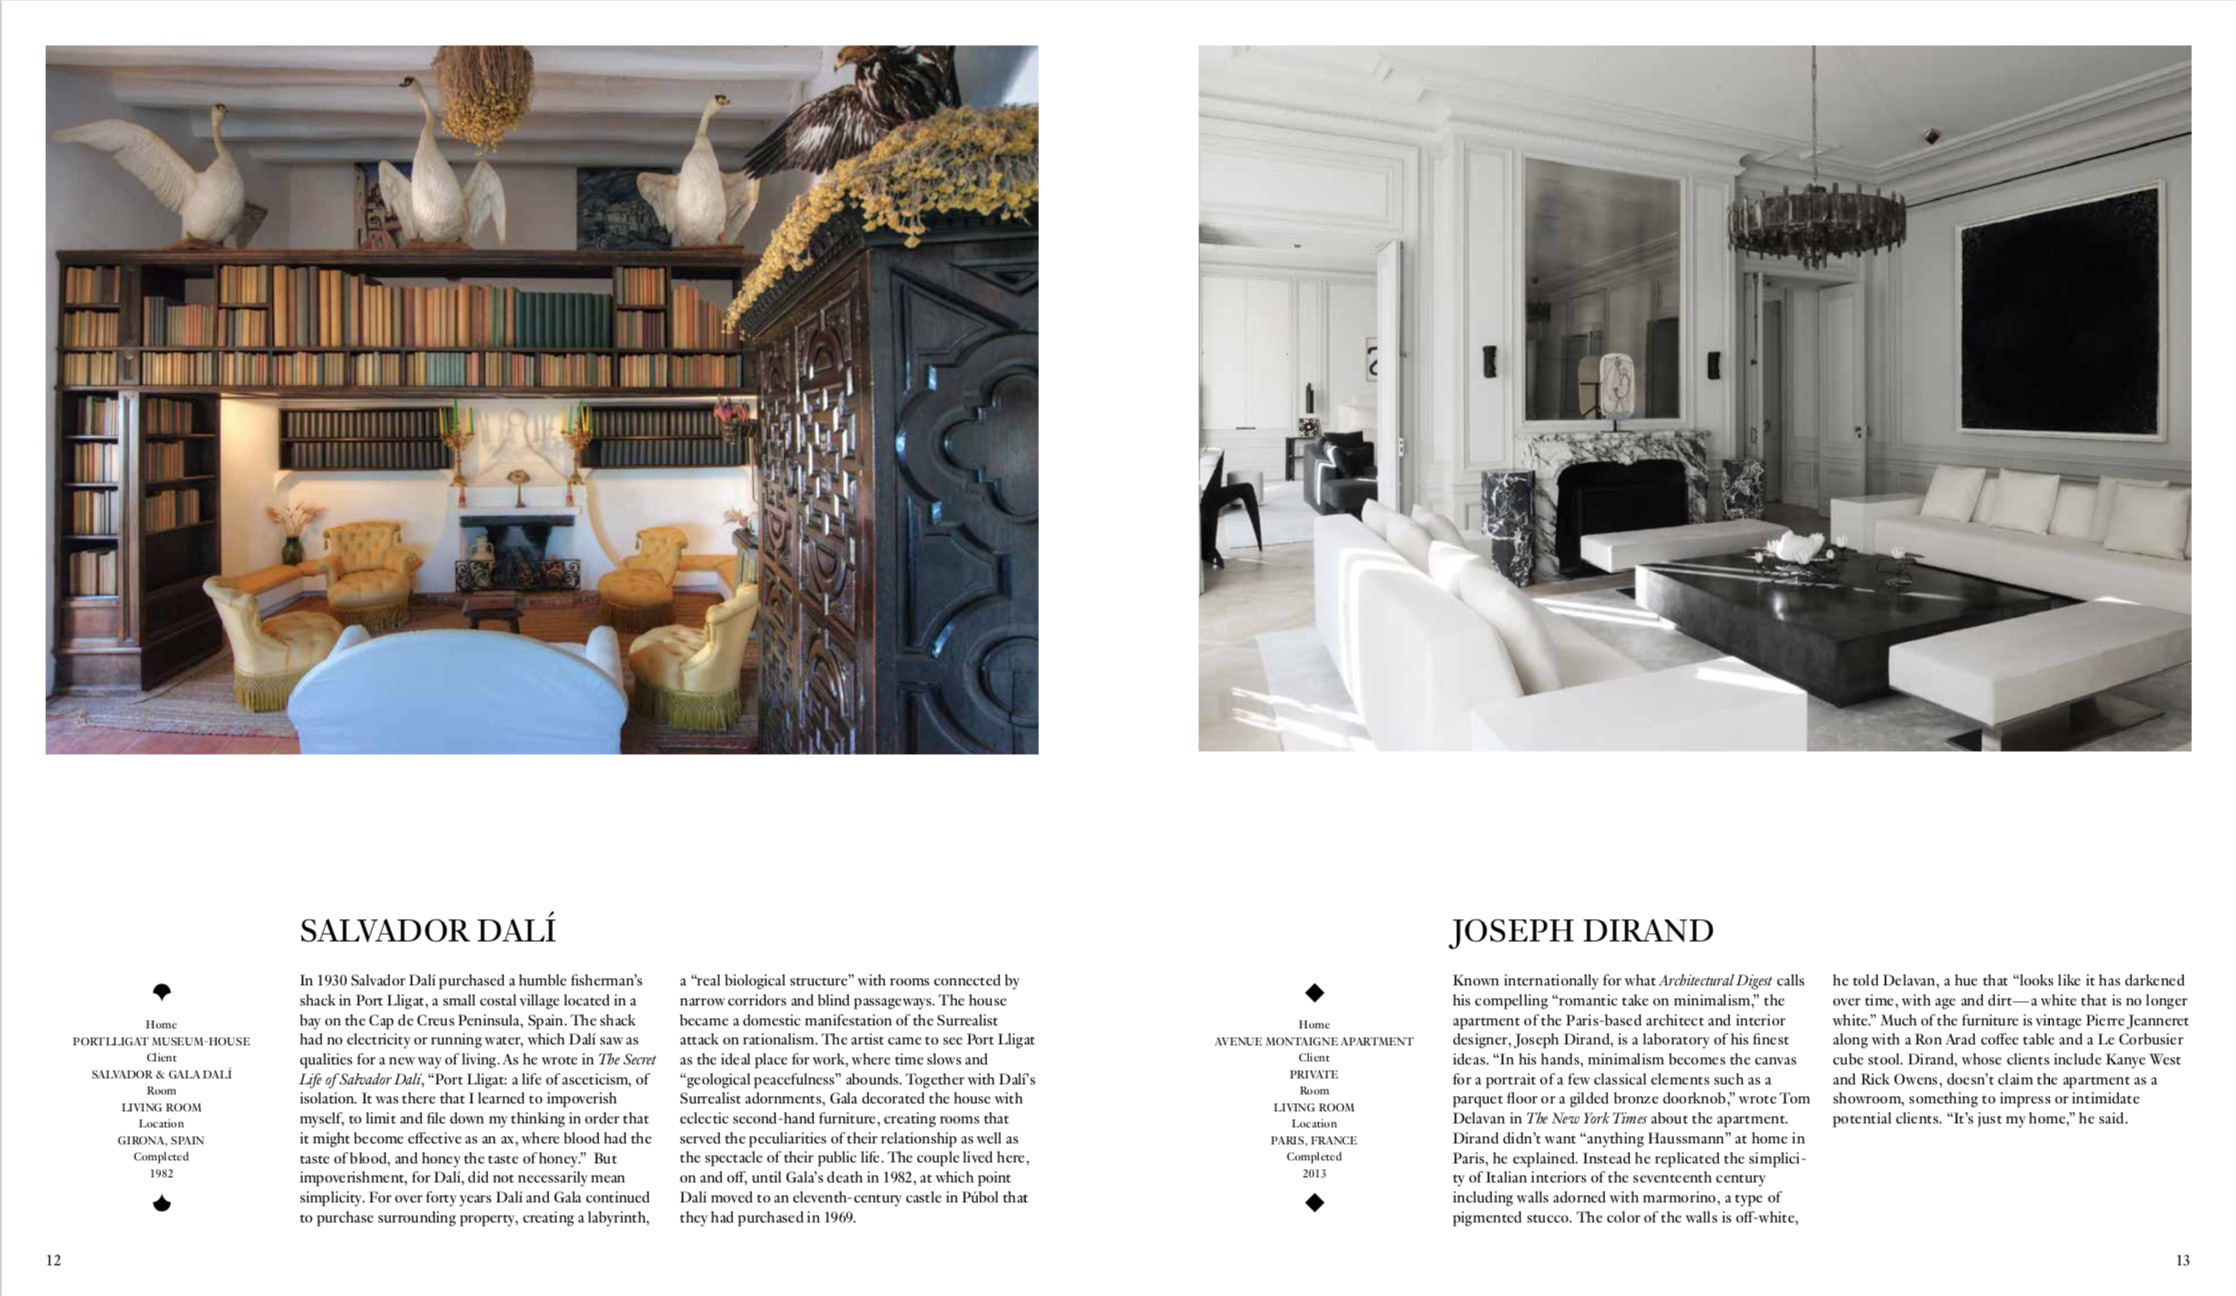 From Interiors (Midnight Blue Edition) copyright Phaidon 2019